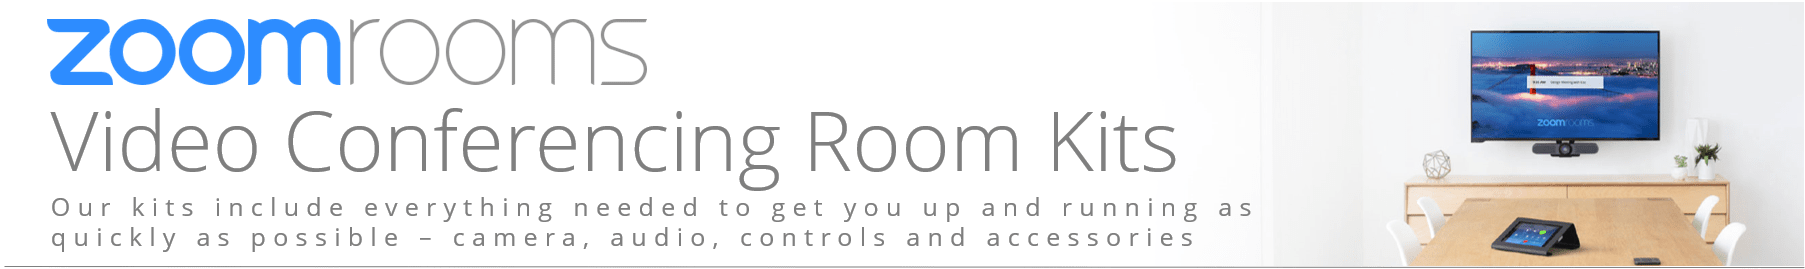 Zoom Rooms Kit feature Crestron and Logitech MeetUp